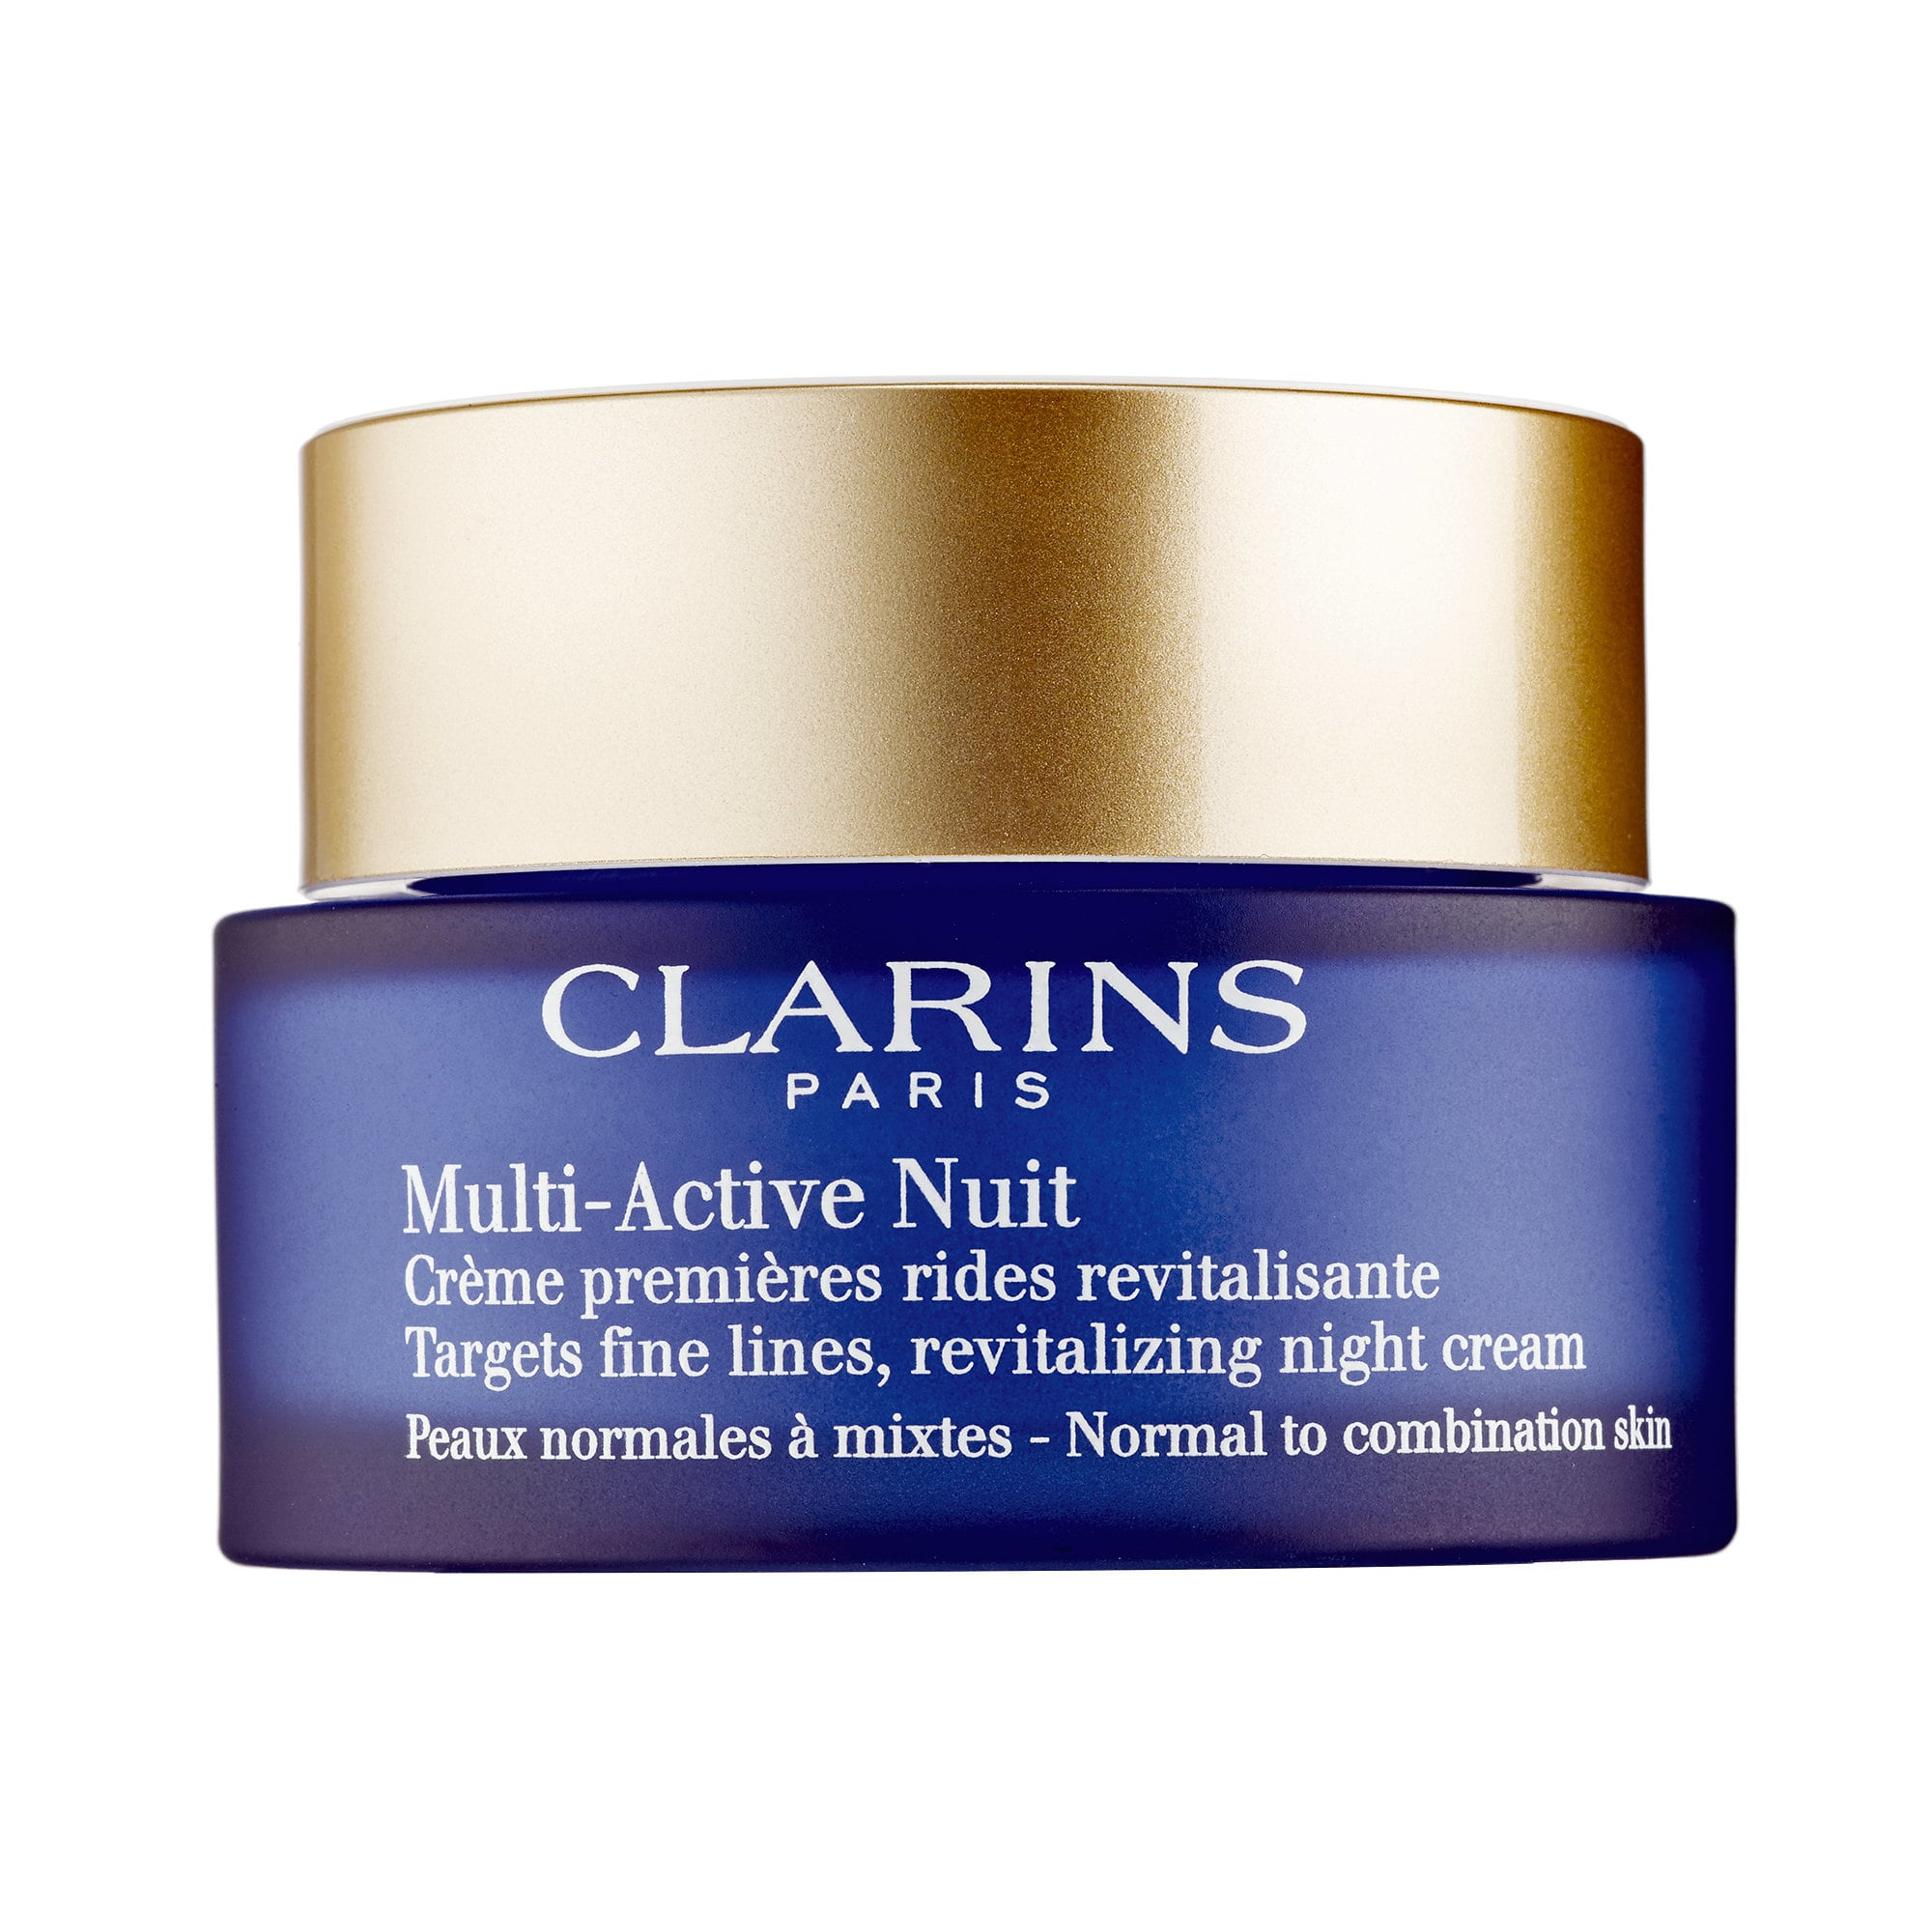 Clarins Multi-Active Nuit Night Cream 50ml N/C - Normal/ Combination Skin